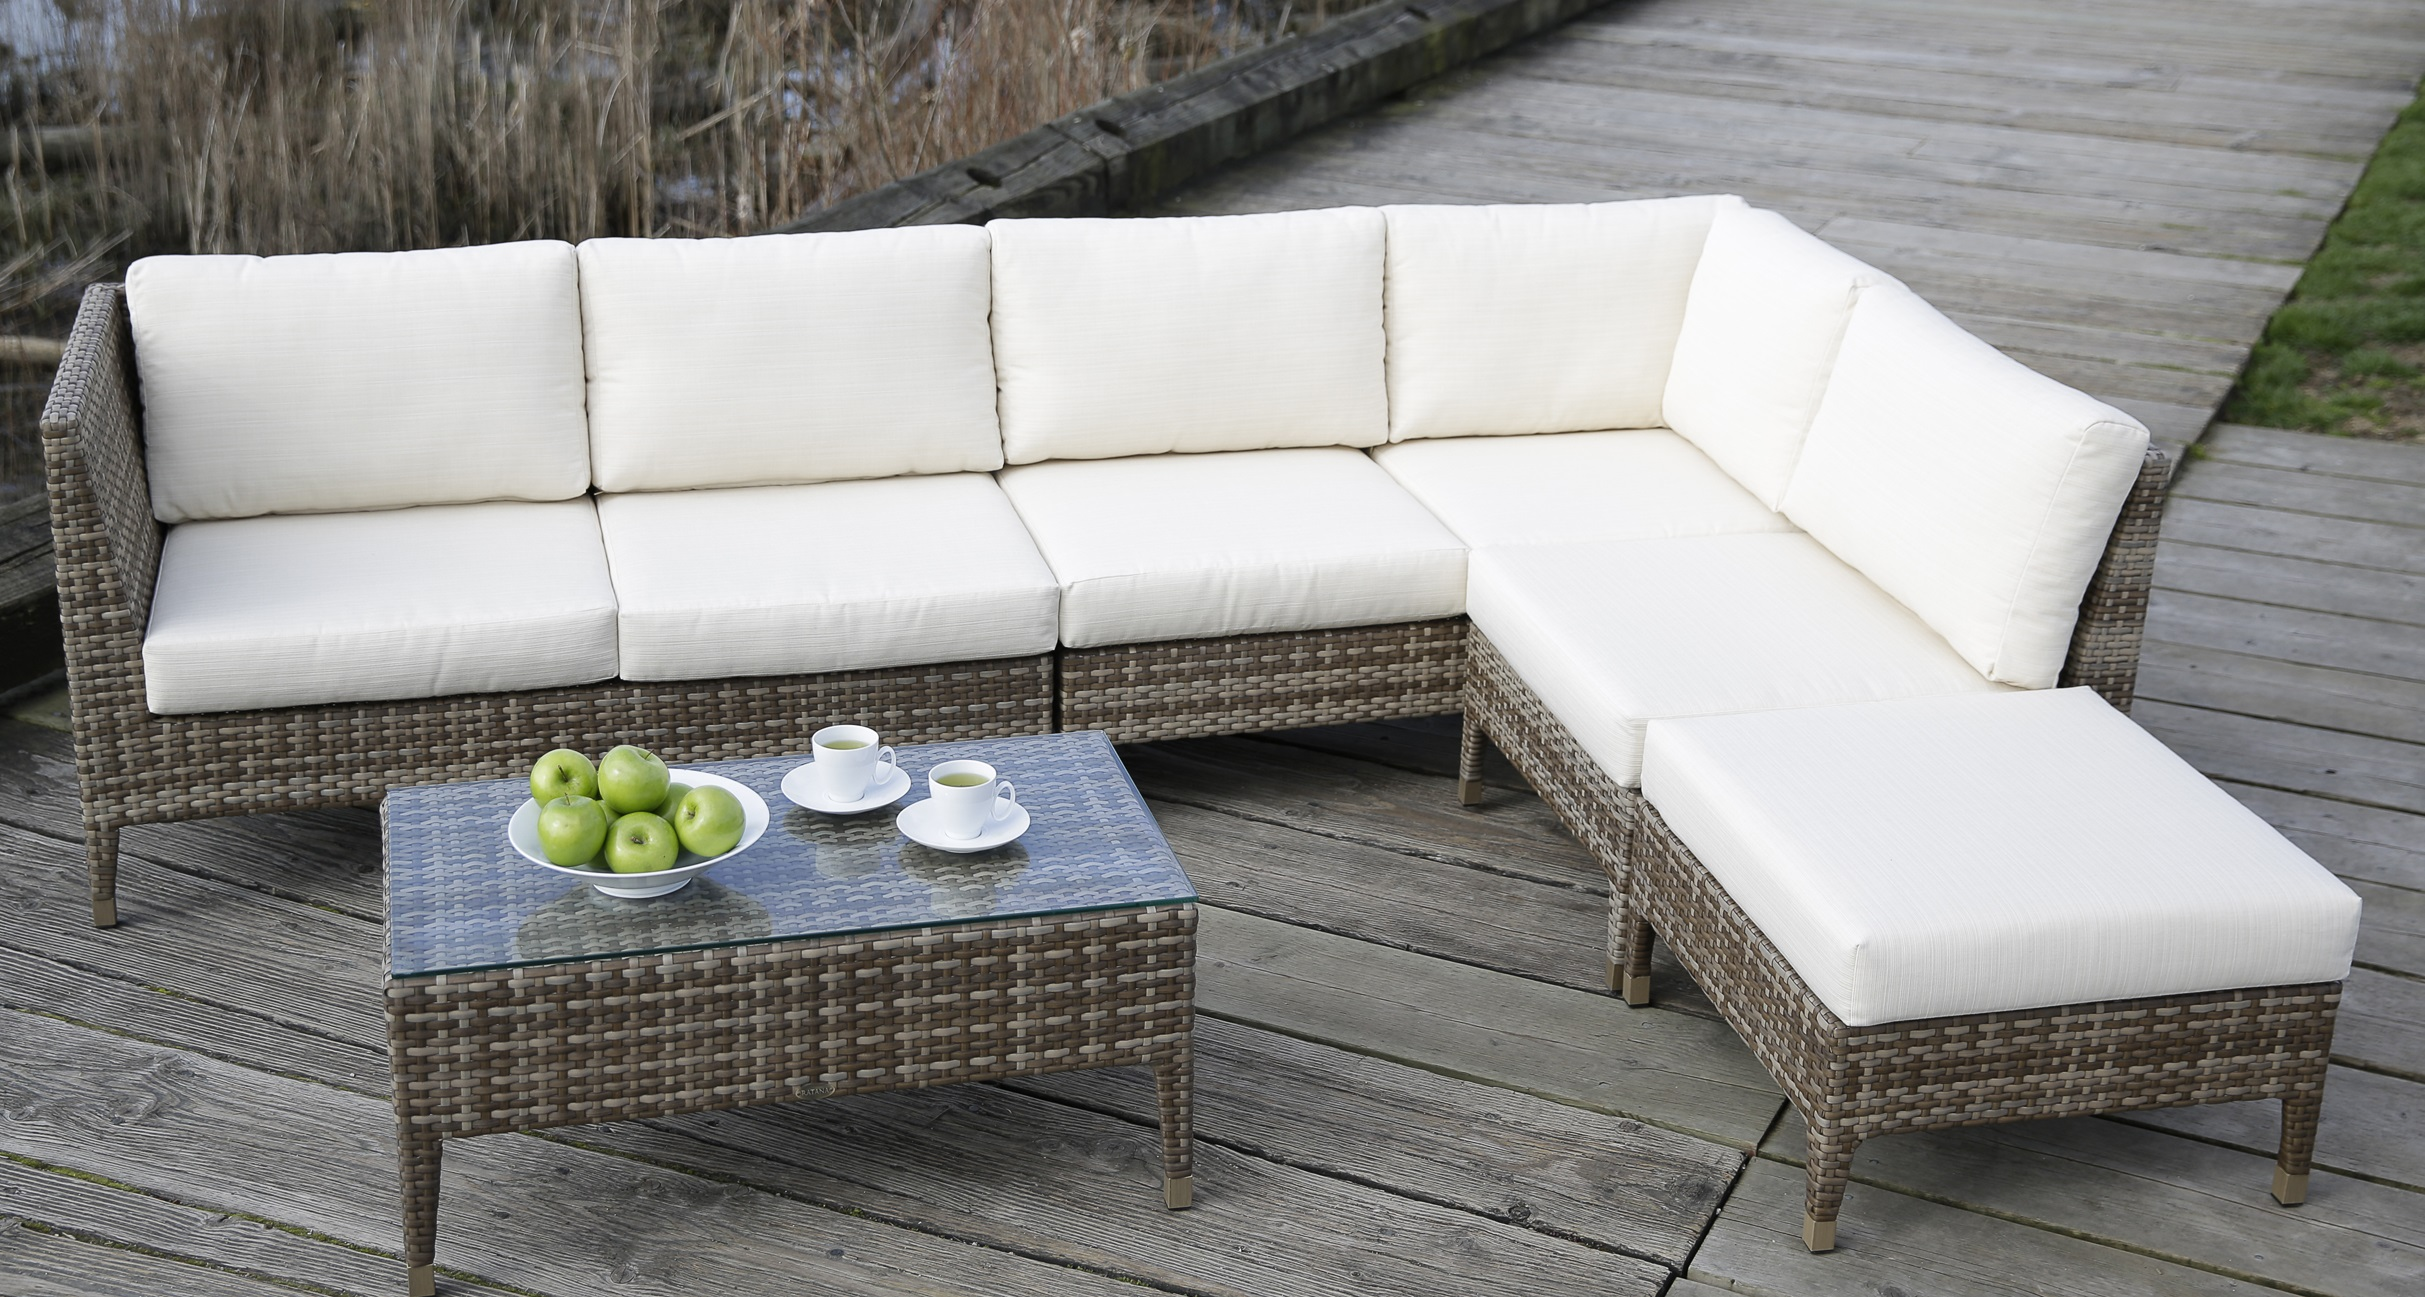 Fireside Patio Bend Or Outdoor Furniture Fireside Of Bend Central Oregon S Outdoor Furniture